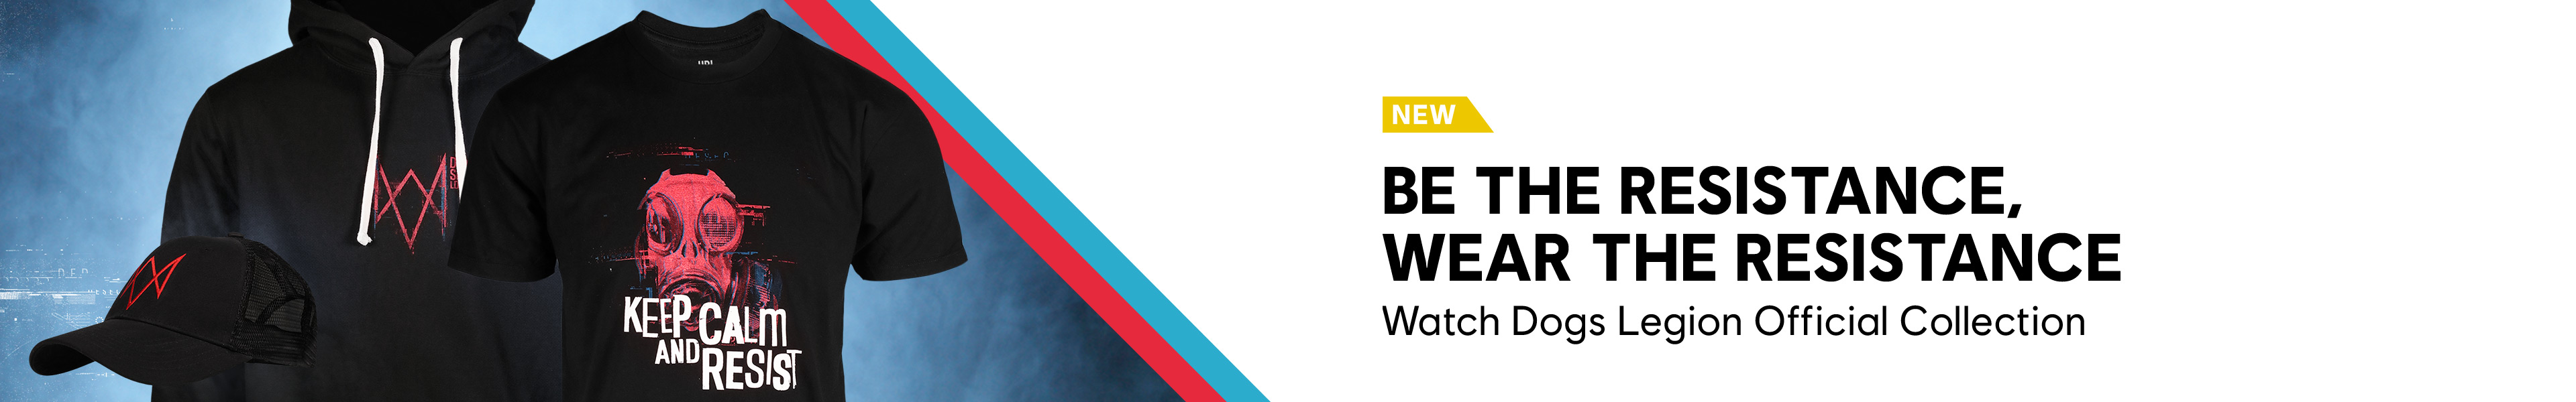 watch dogs legion collection category banner